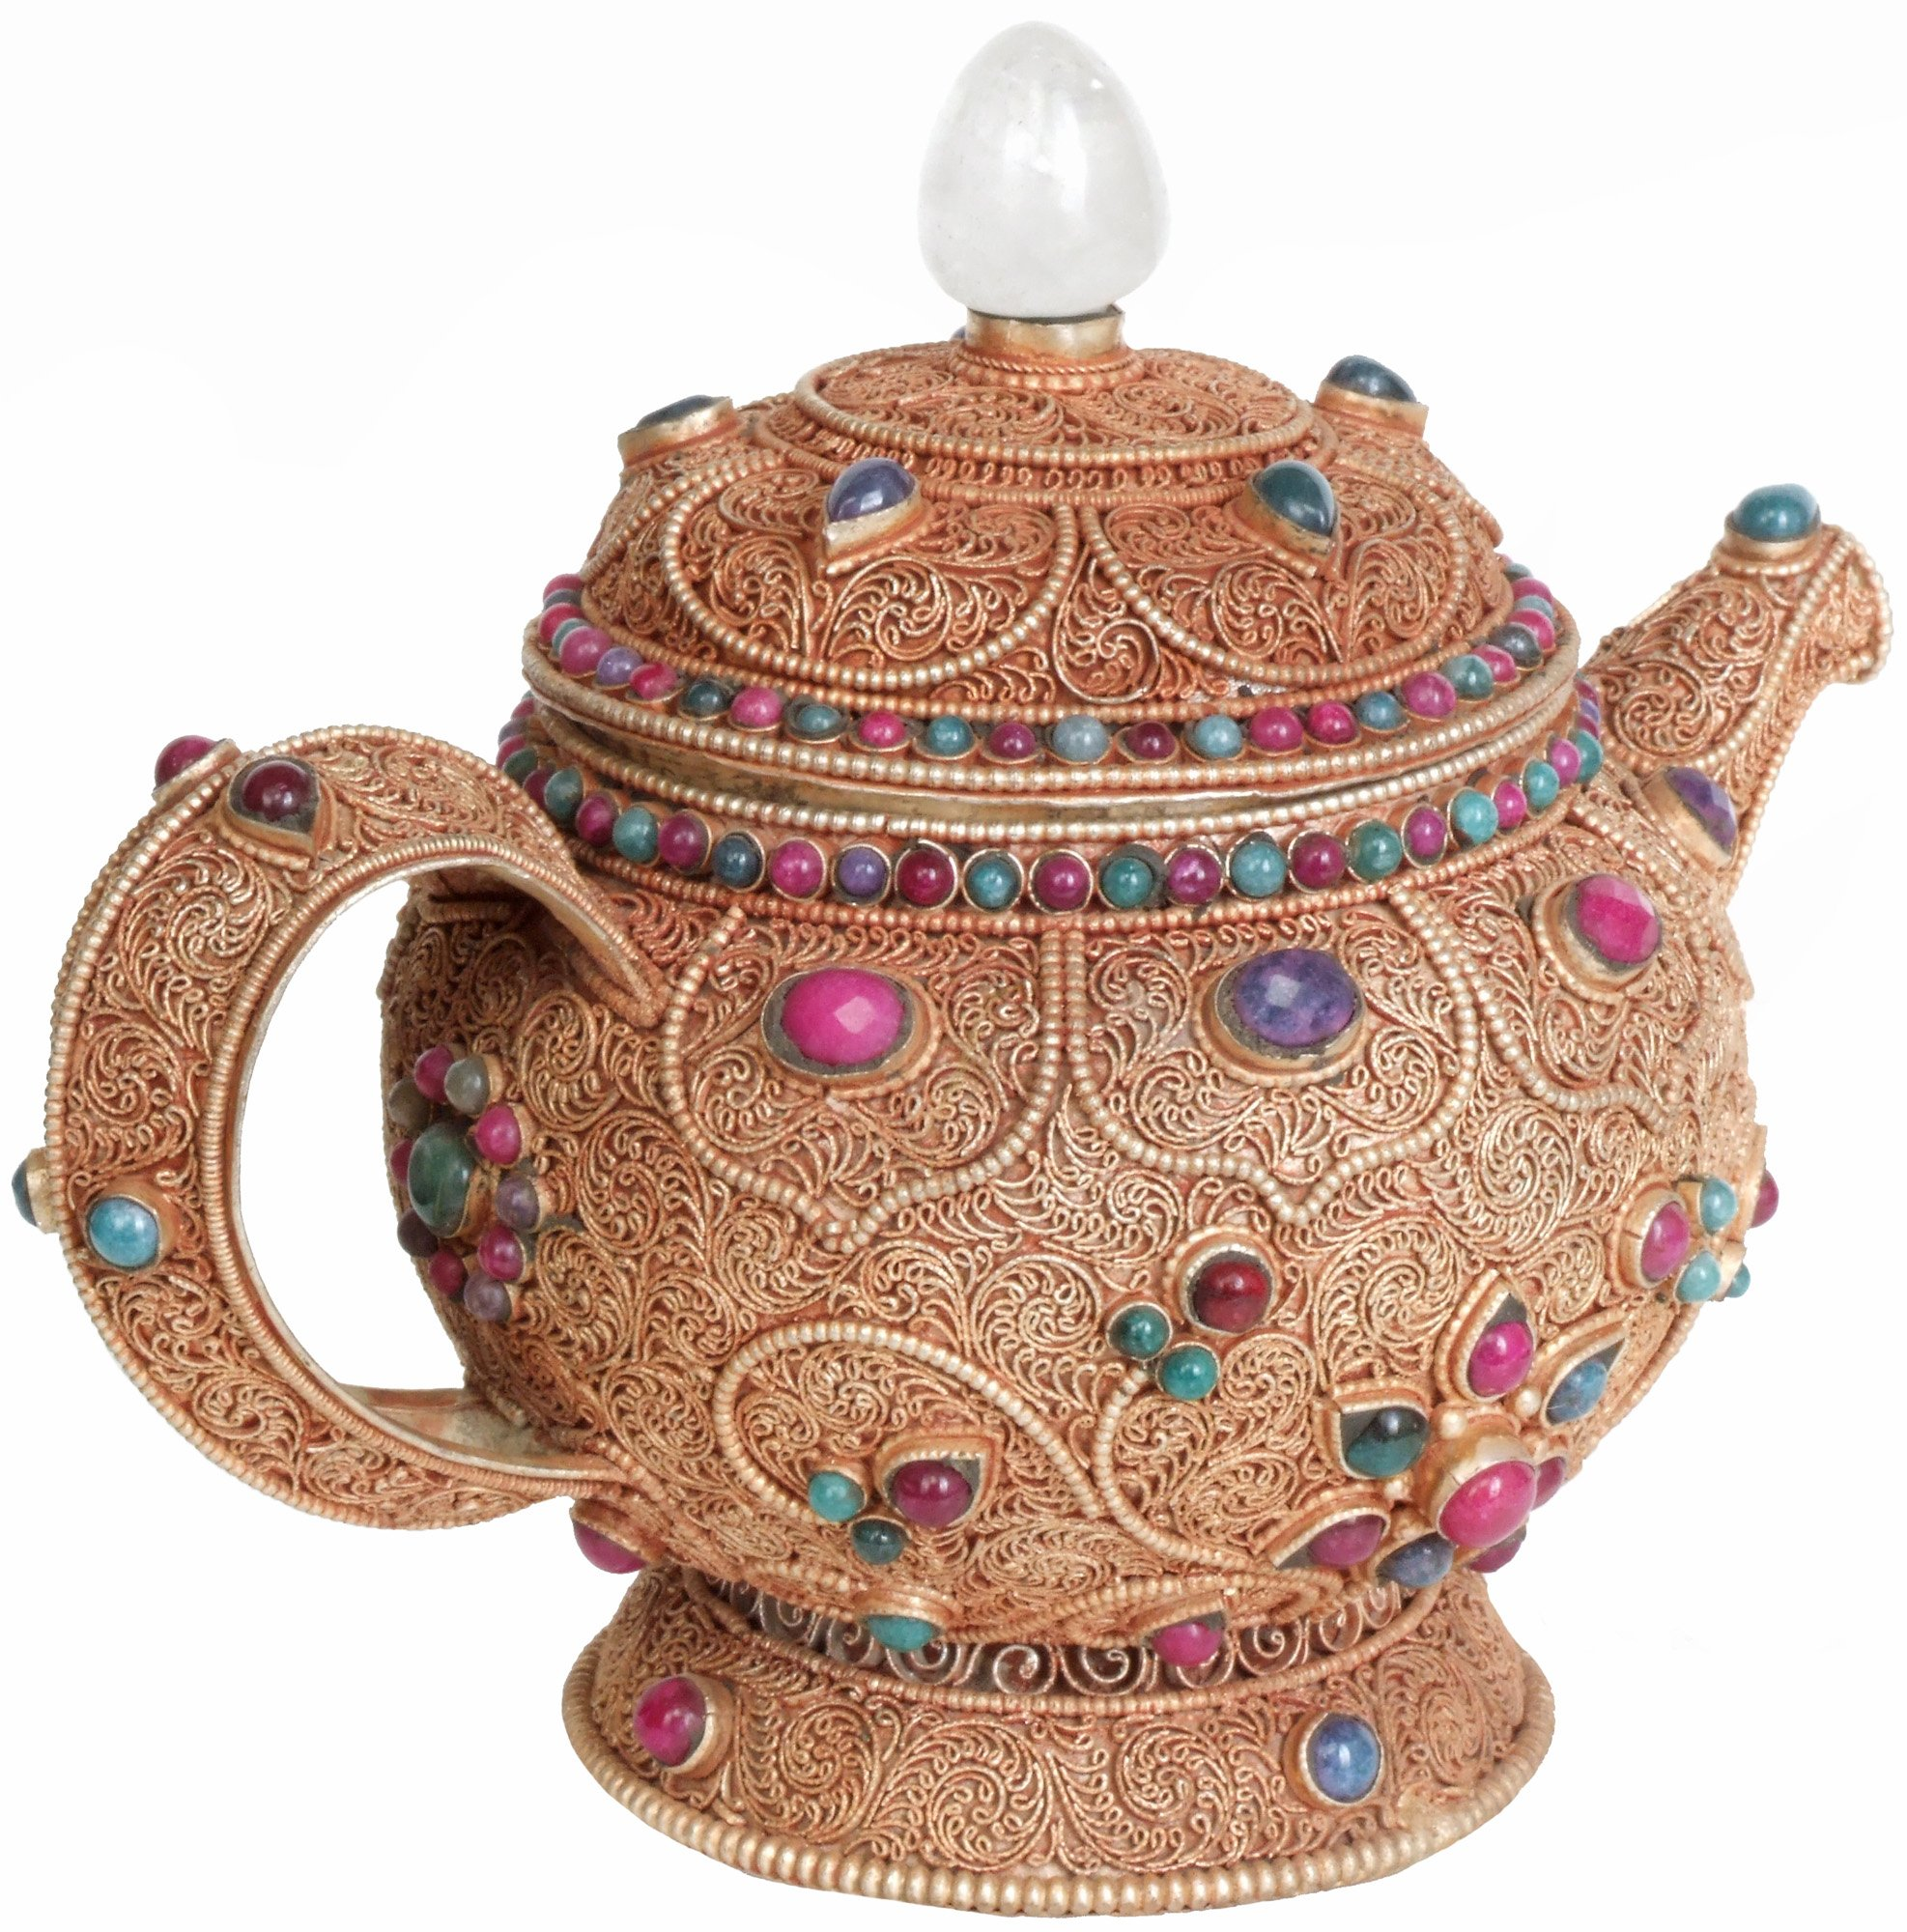 Superfine Filigree Kettle with Lid and Gemstones (Museum Quality) - Copper